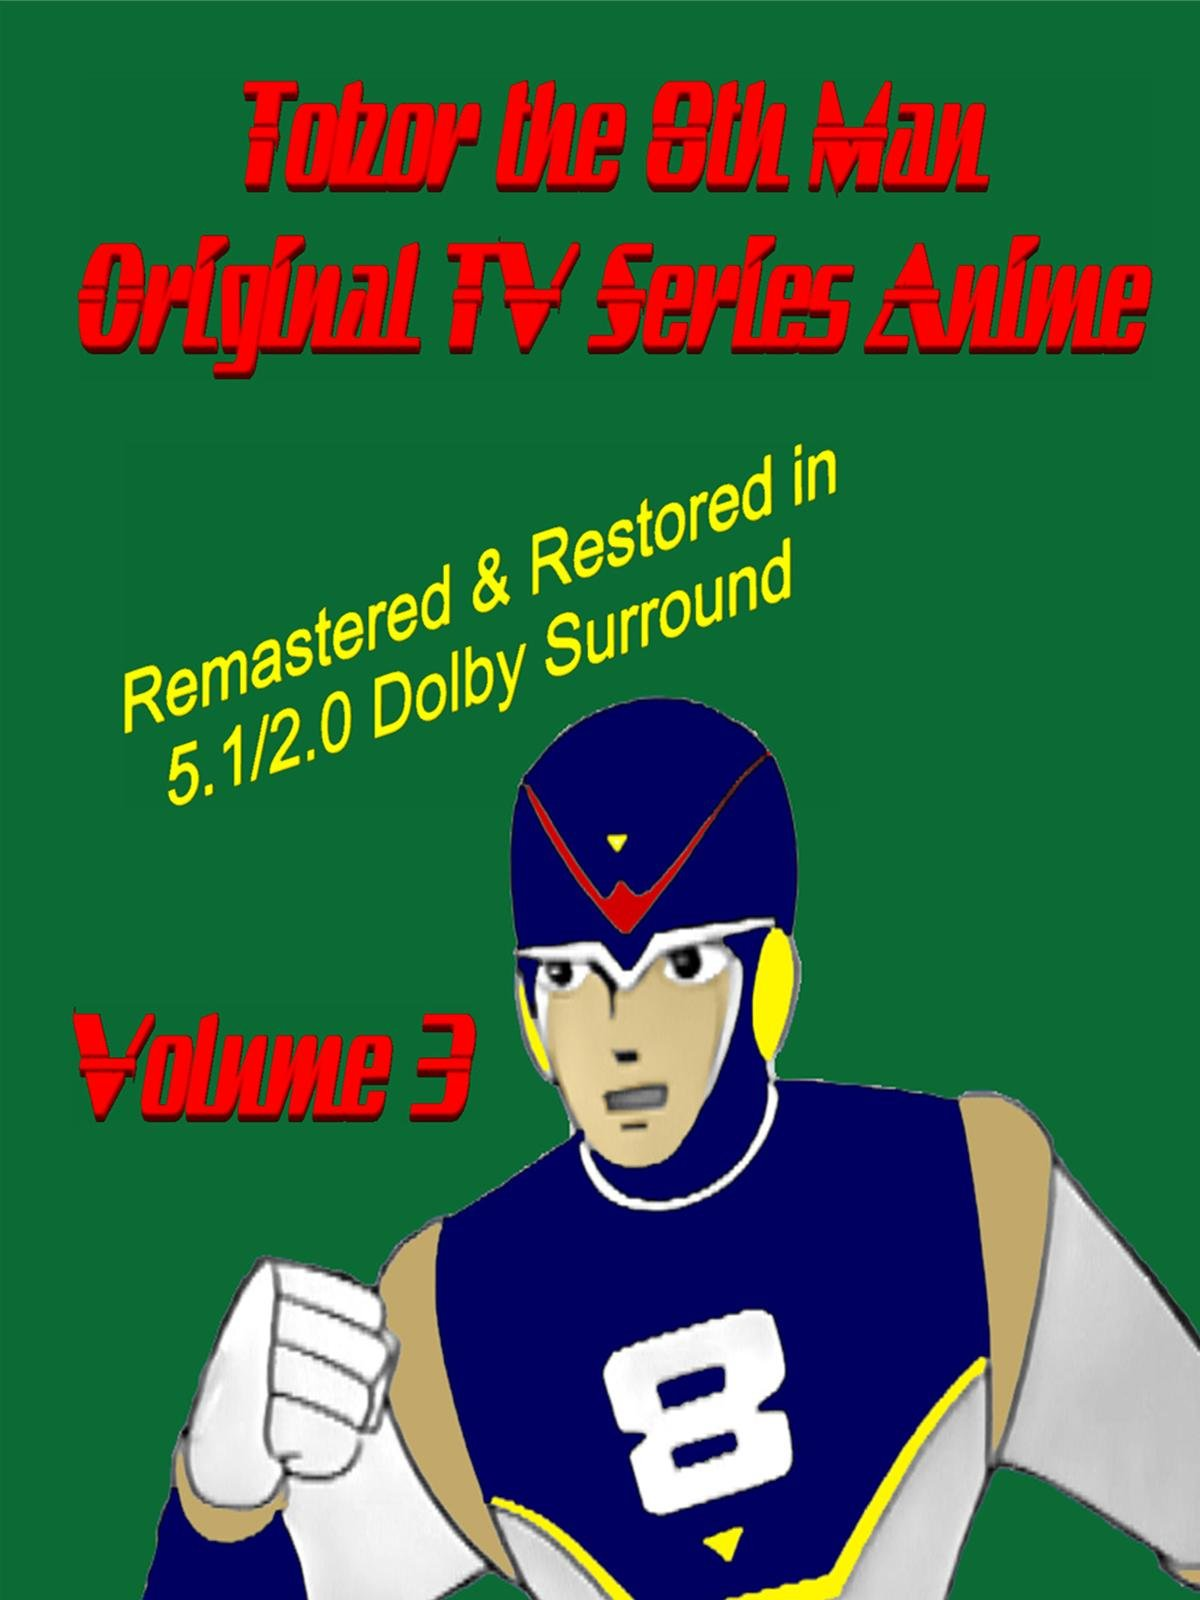 Tobor the 8th Man Original TV Series Anime Vol. 3 [Remastered & Restored]